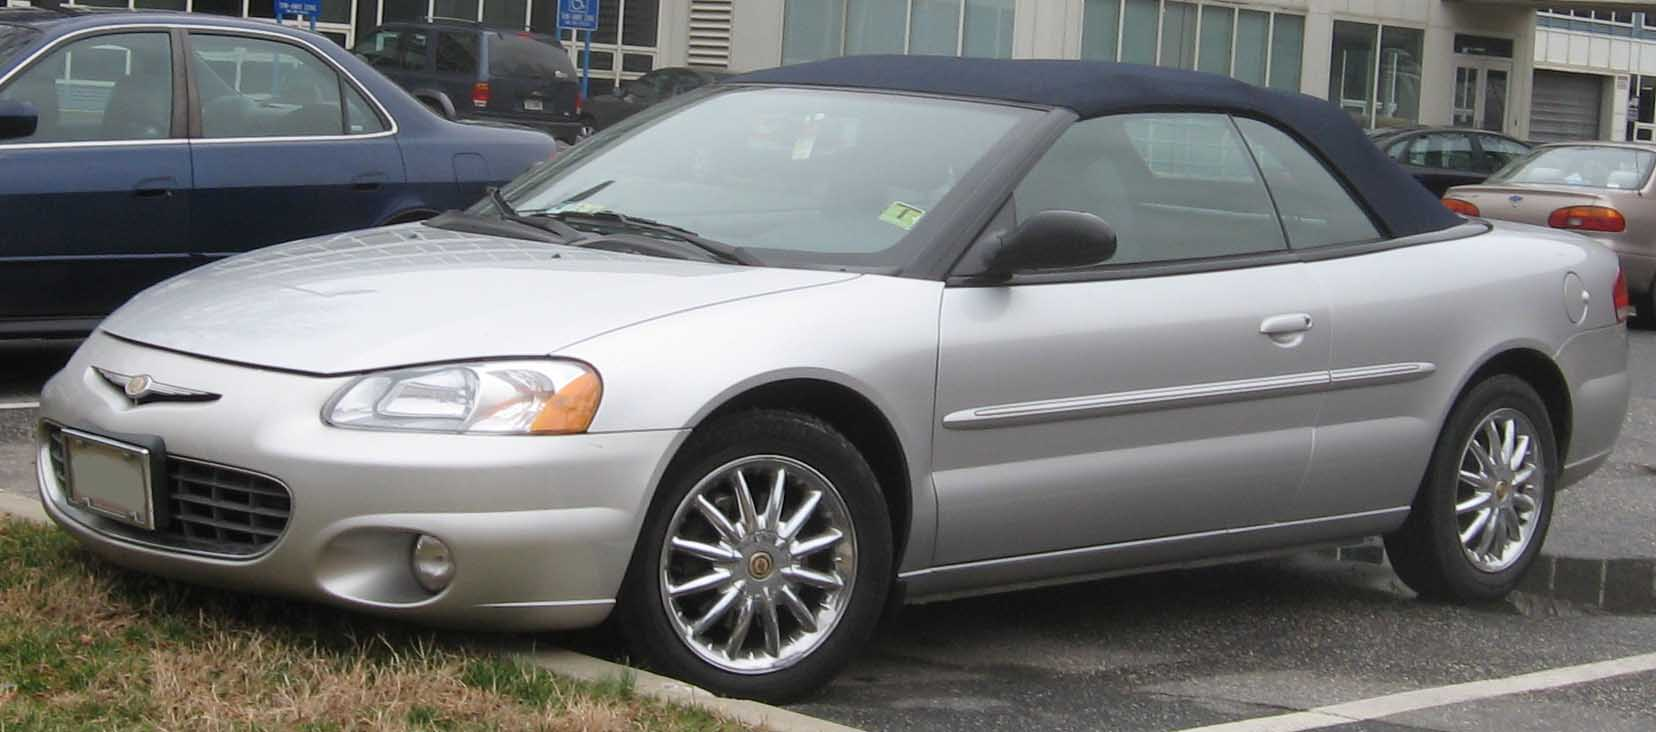 Chrysler sebring photo - 1